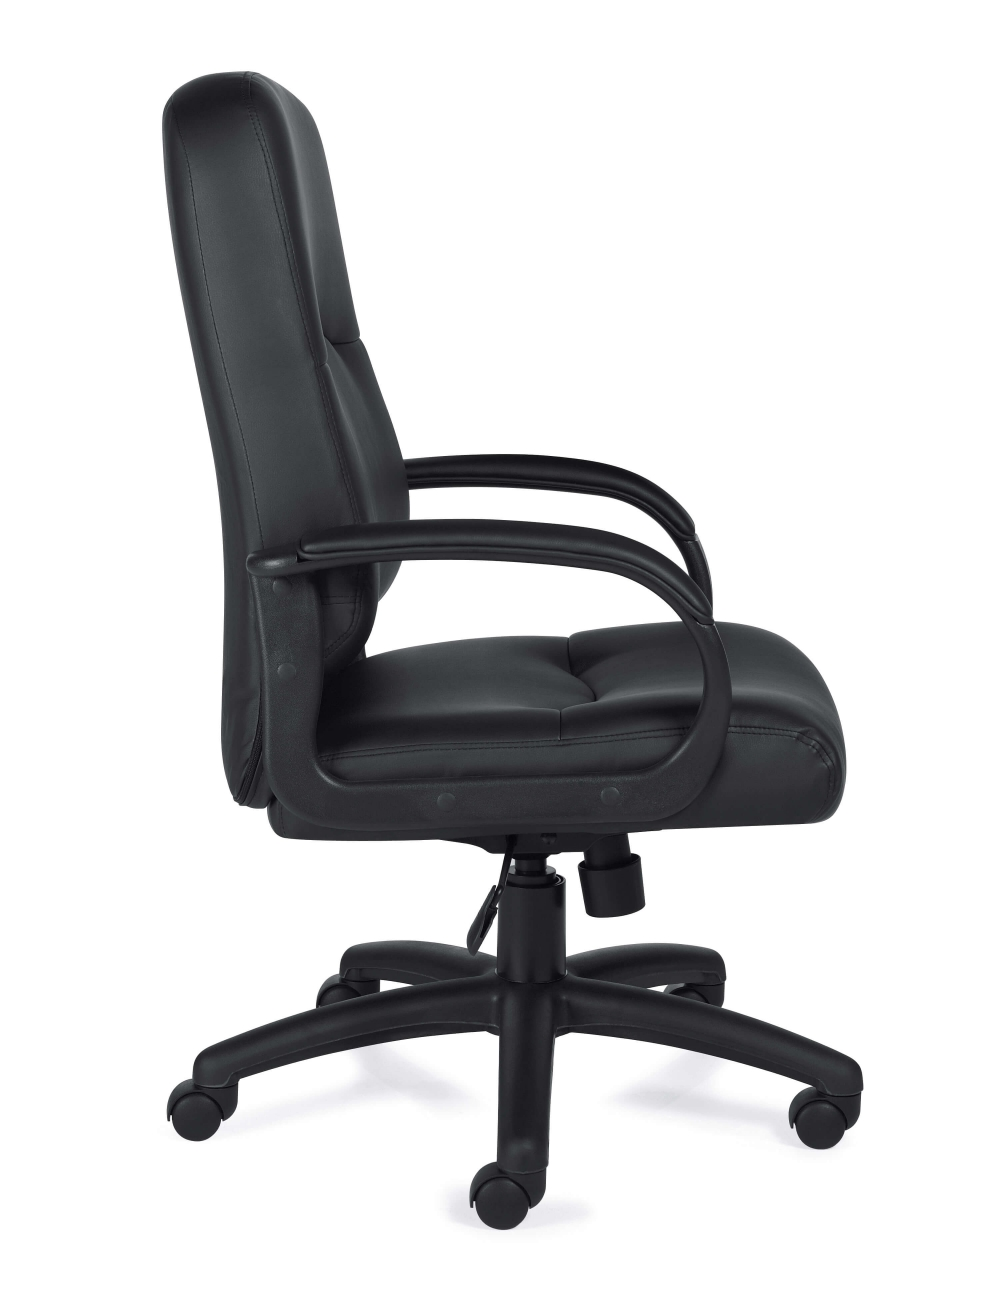 Leather office chair side view